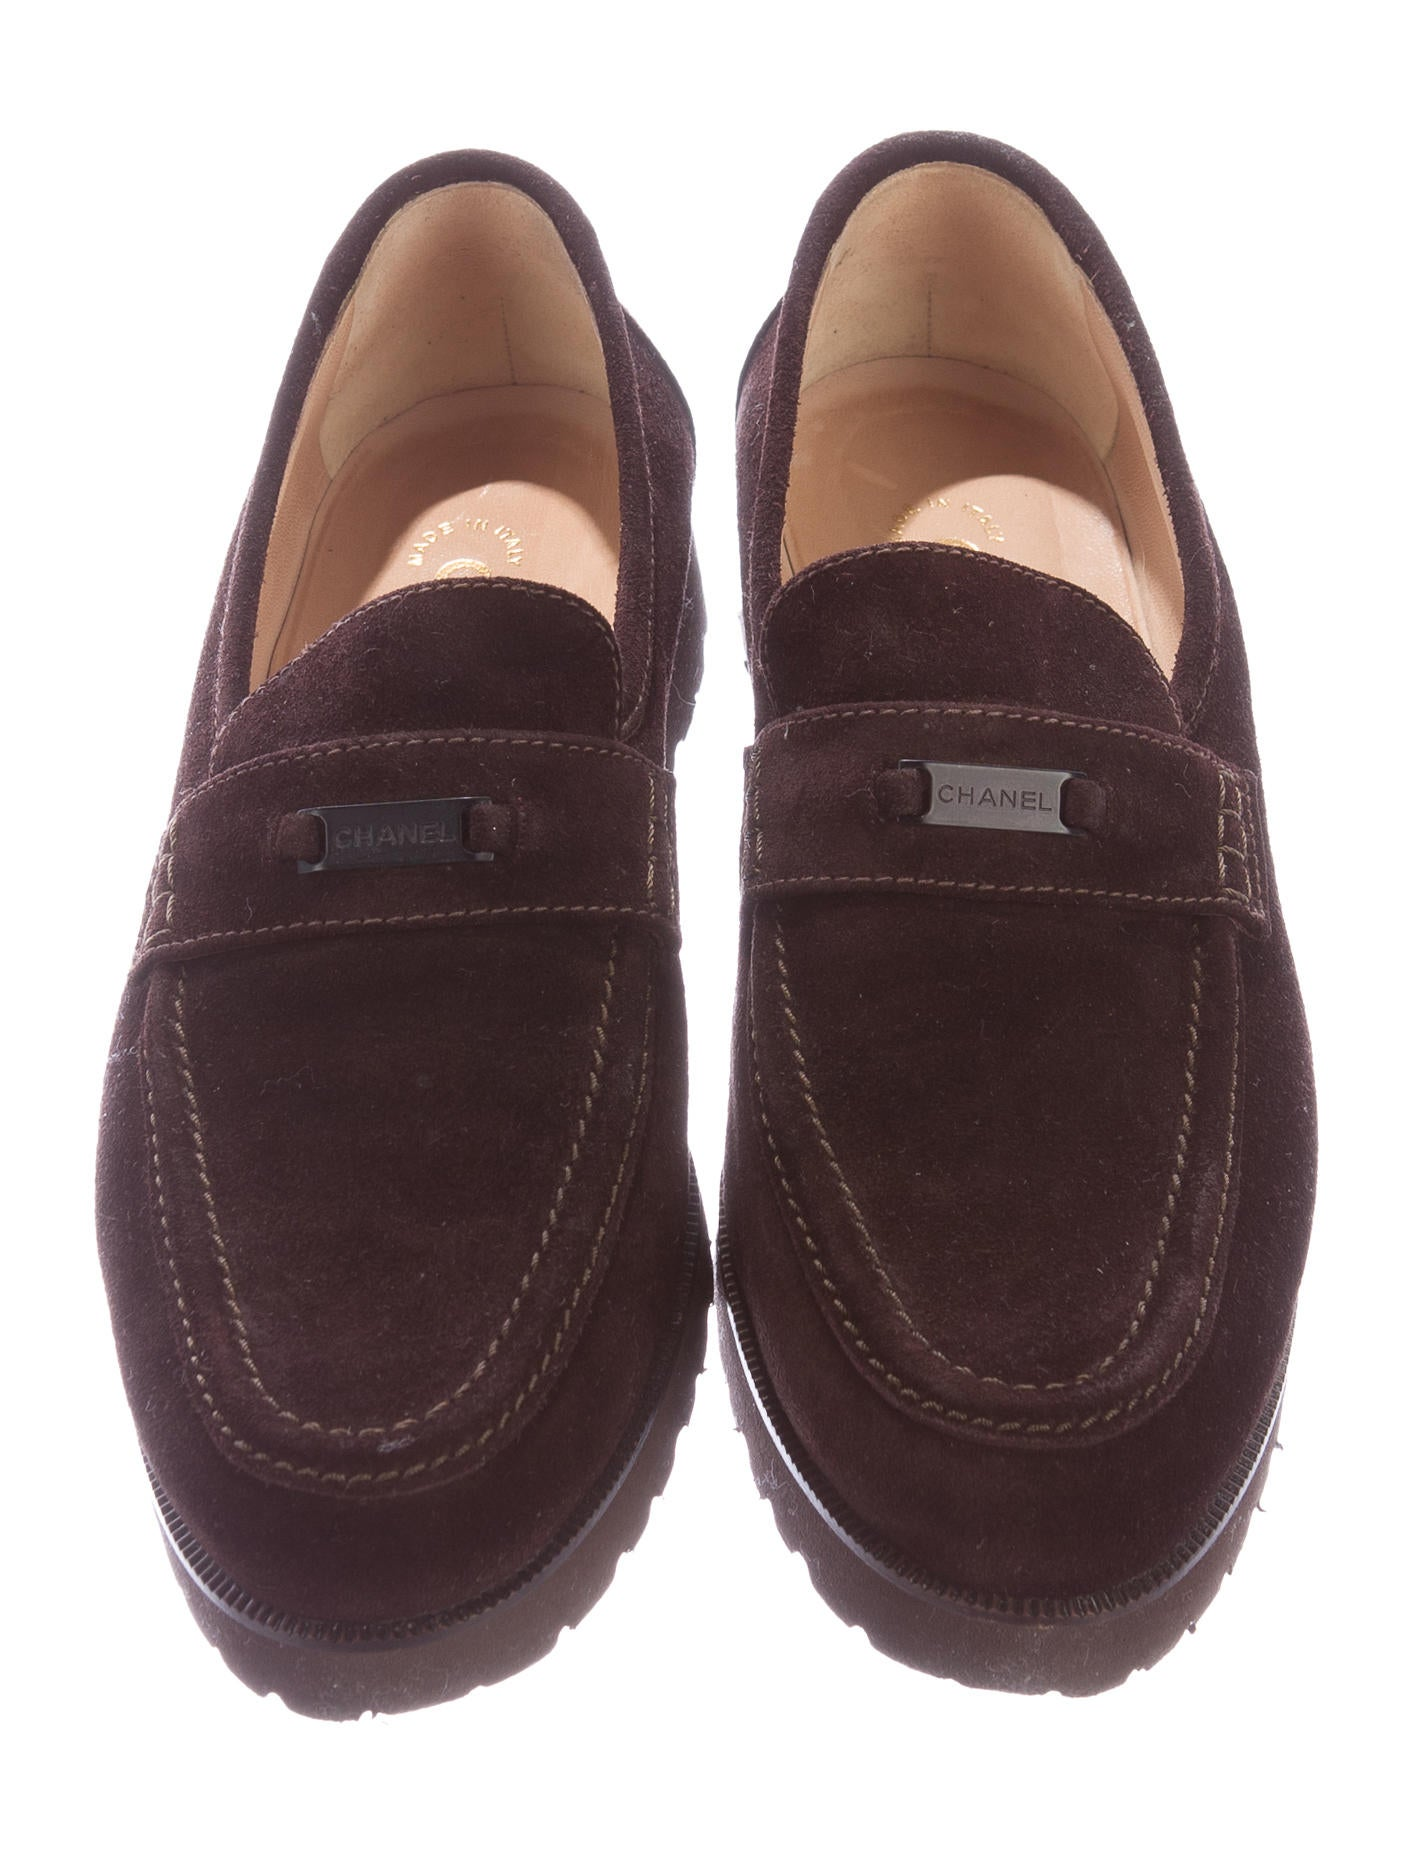 Chanel Suede Penny Loafers - Shoes - CHA127477 | The RealReal